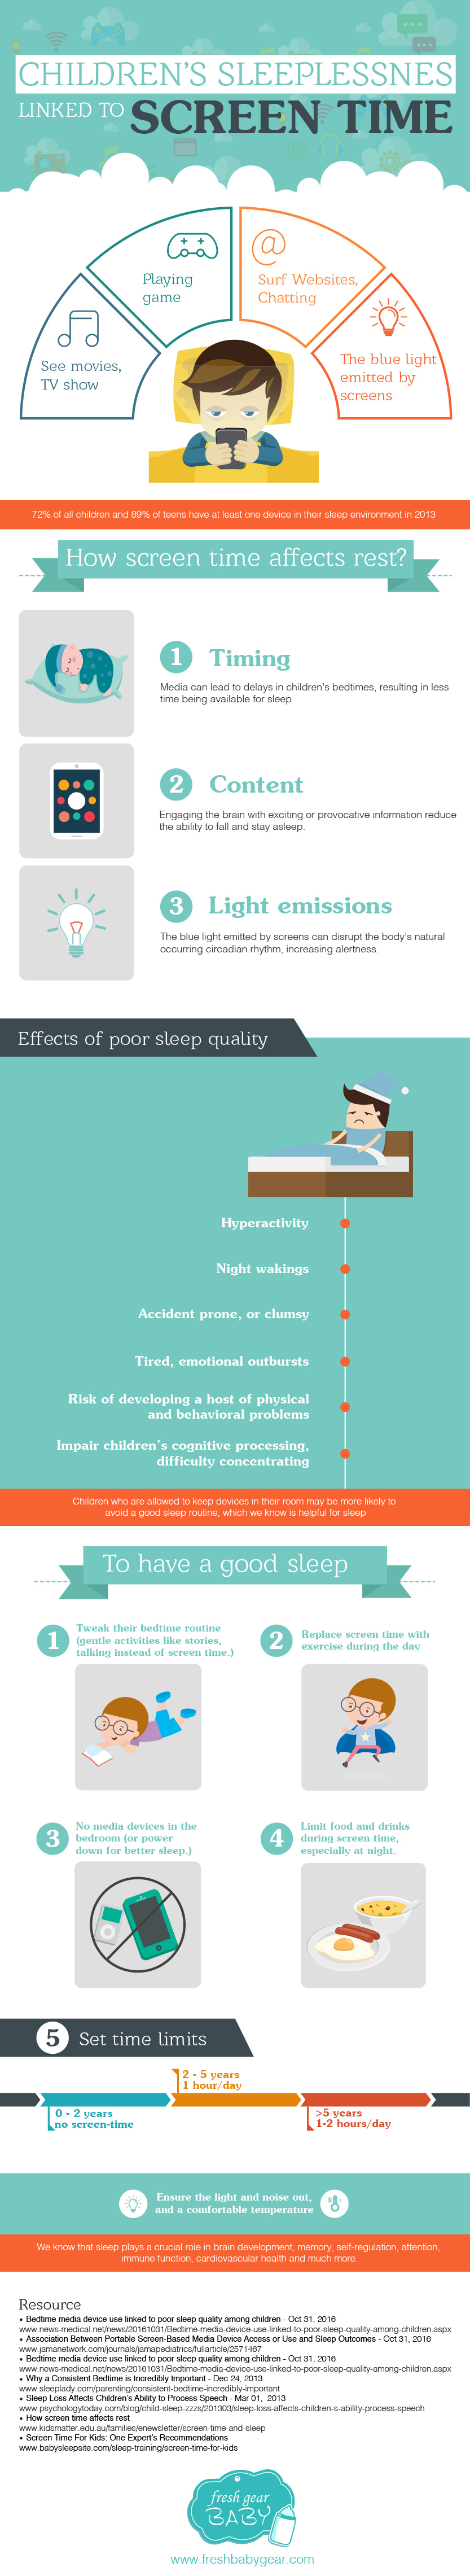 Childrens sleeplessnes linked to screen time infographic